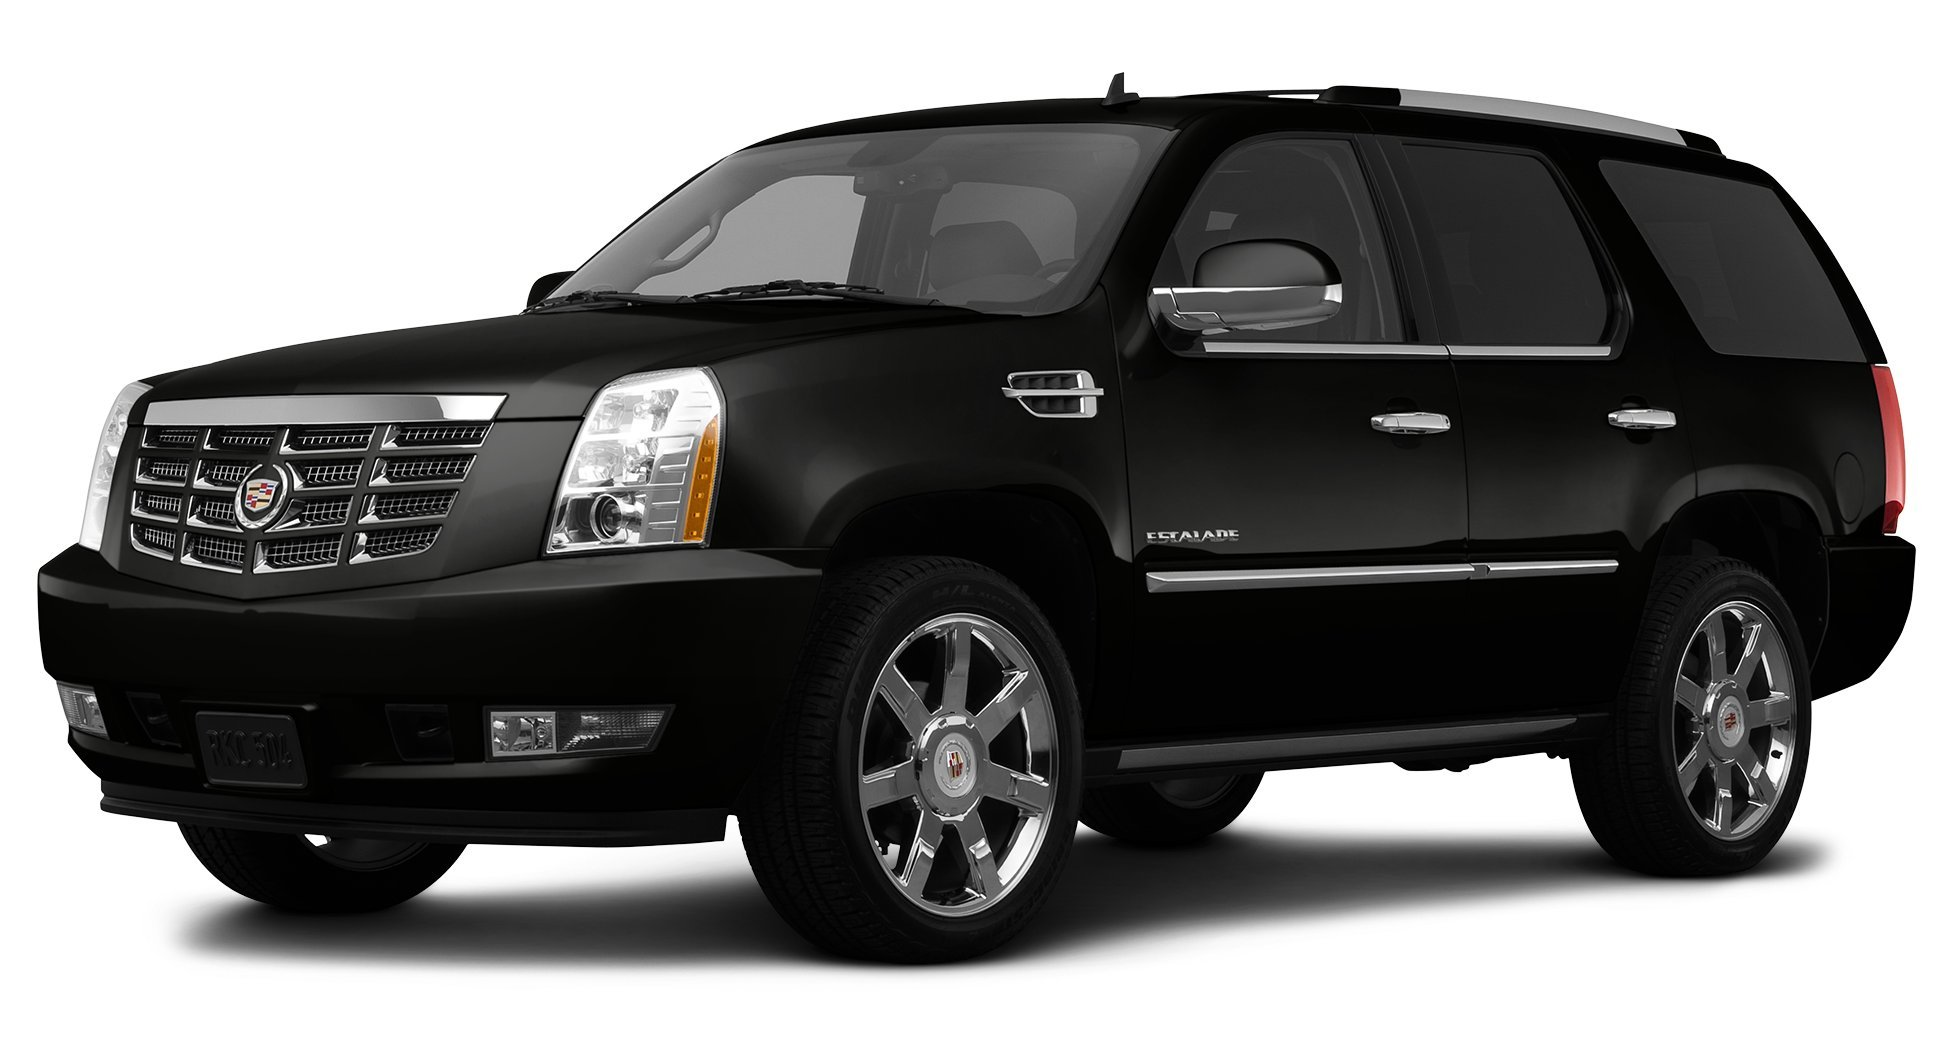 red bank nj vehicle suv photo for in luxury stock details escalade cadillac sale